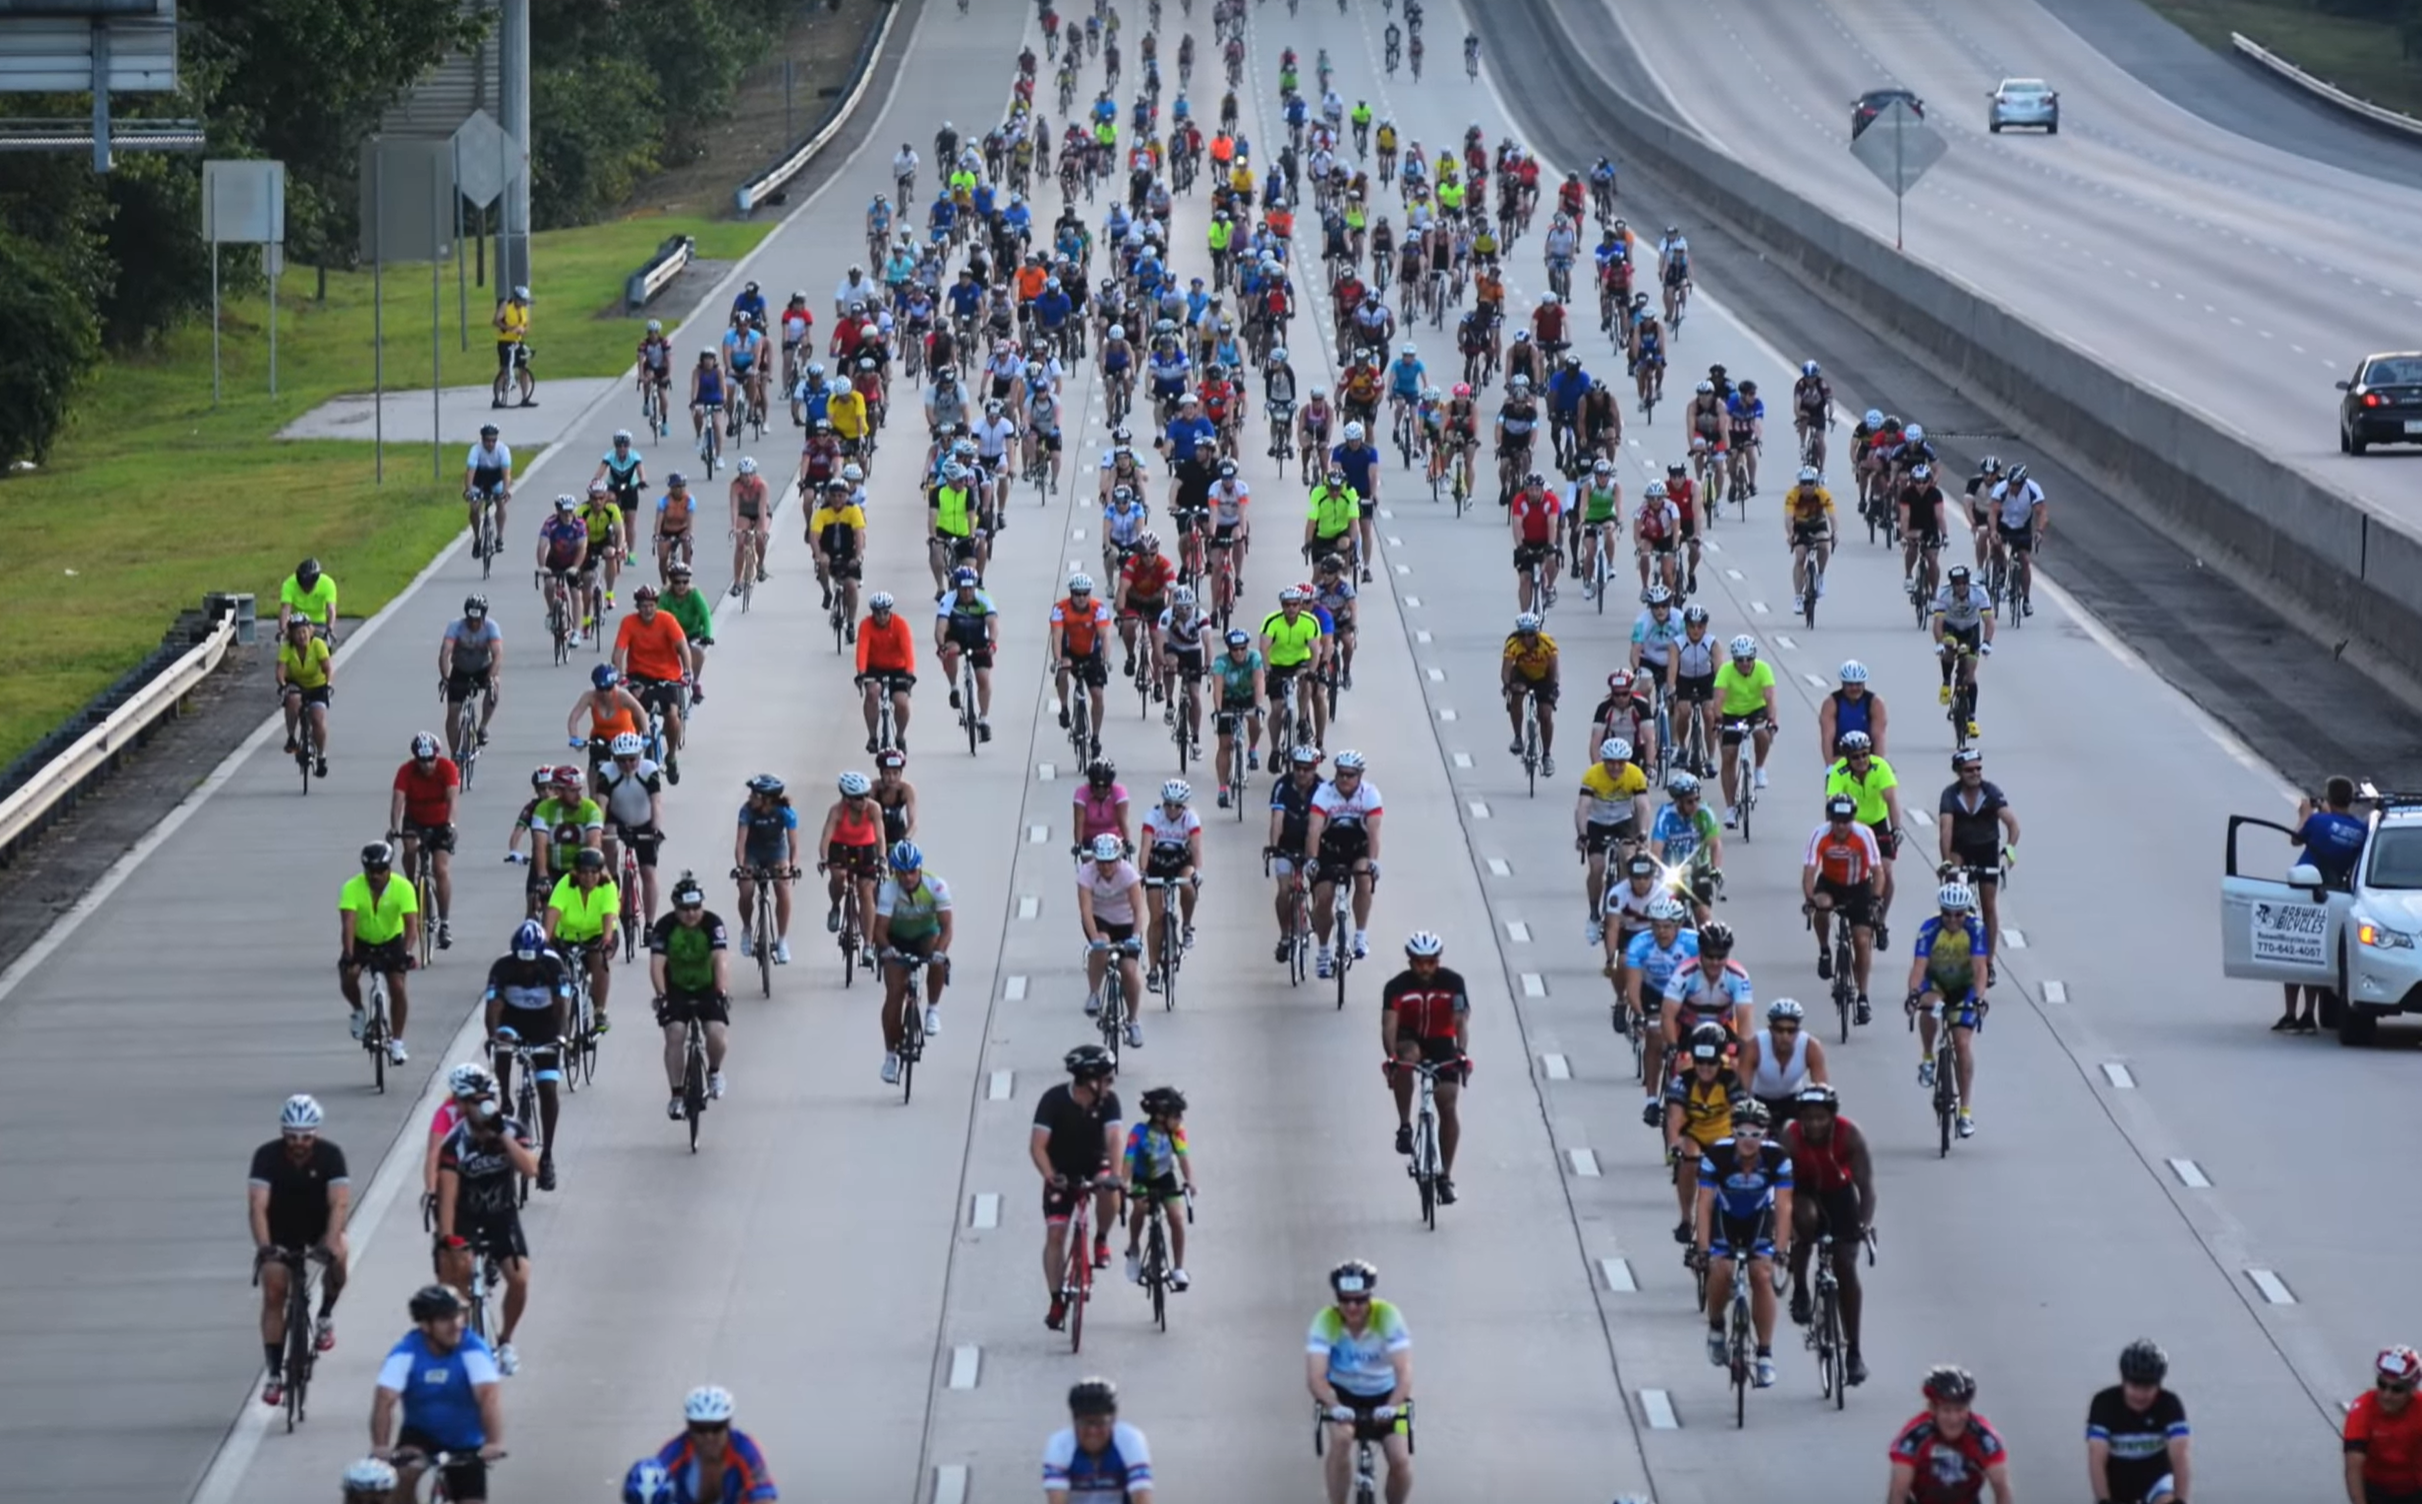 A swarm of cyclists pedal down the interstate.